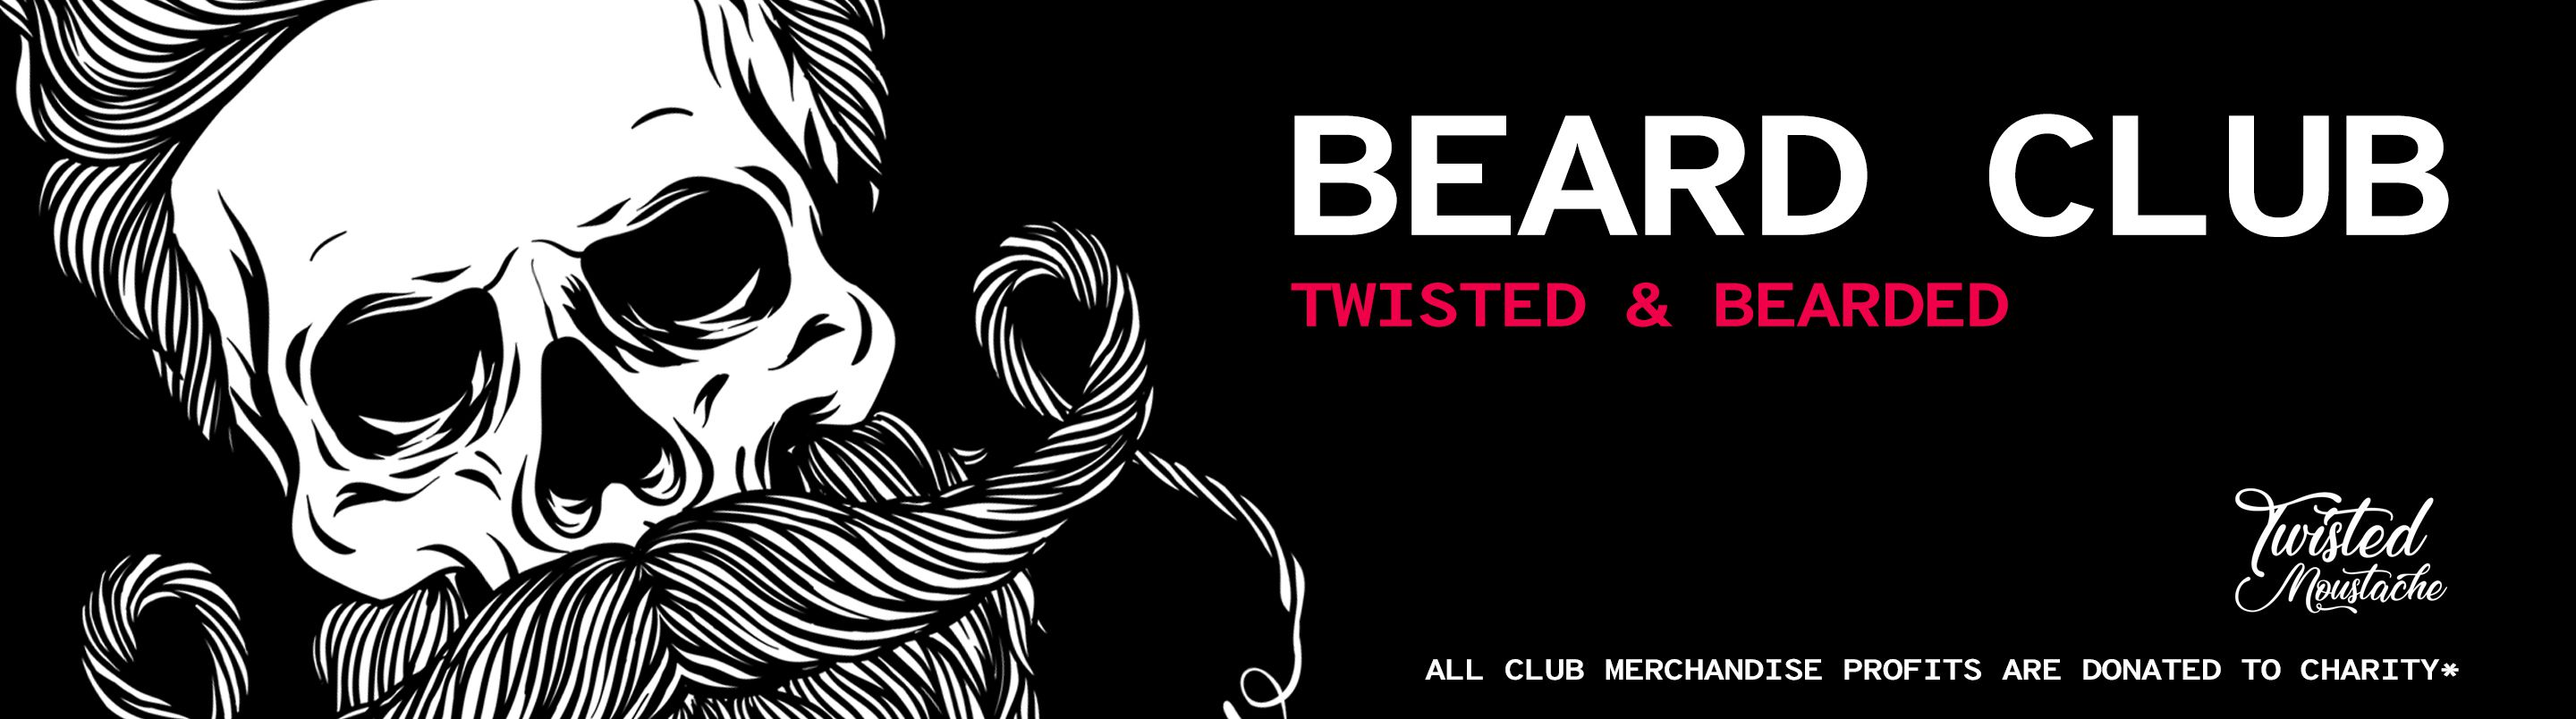 Twisted and Bearded Club Merch - All profits go to charity